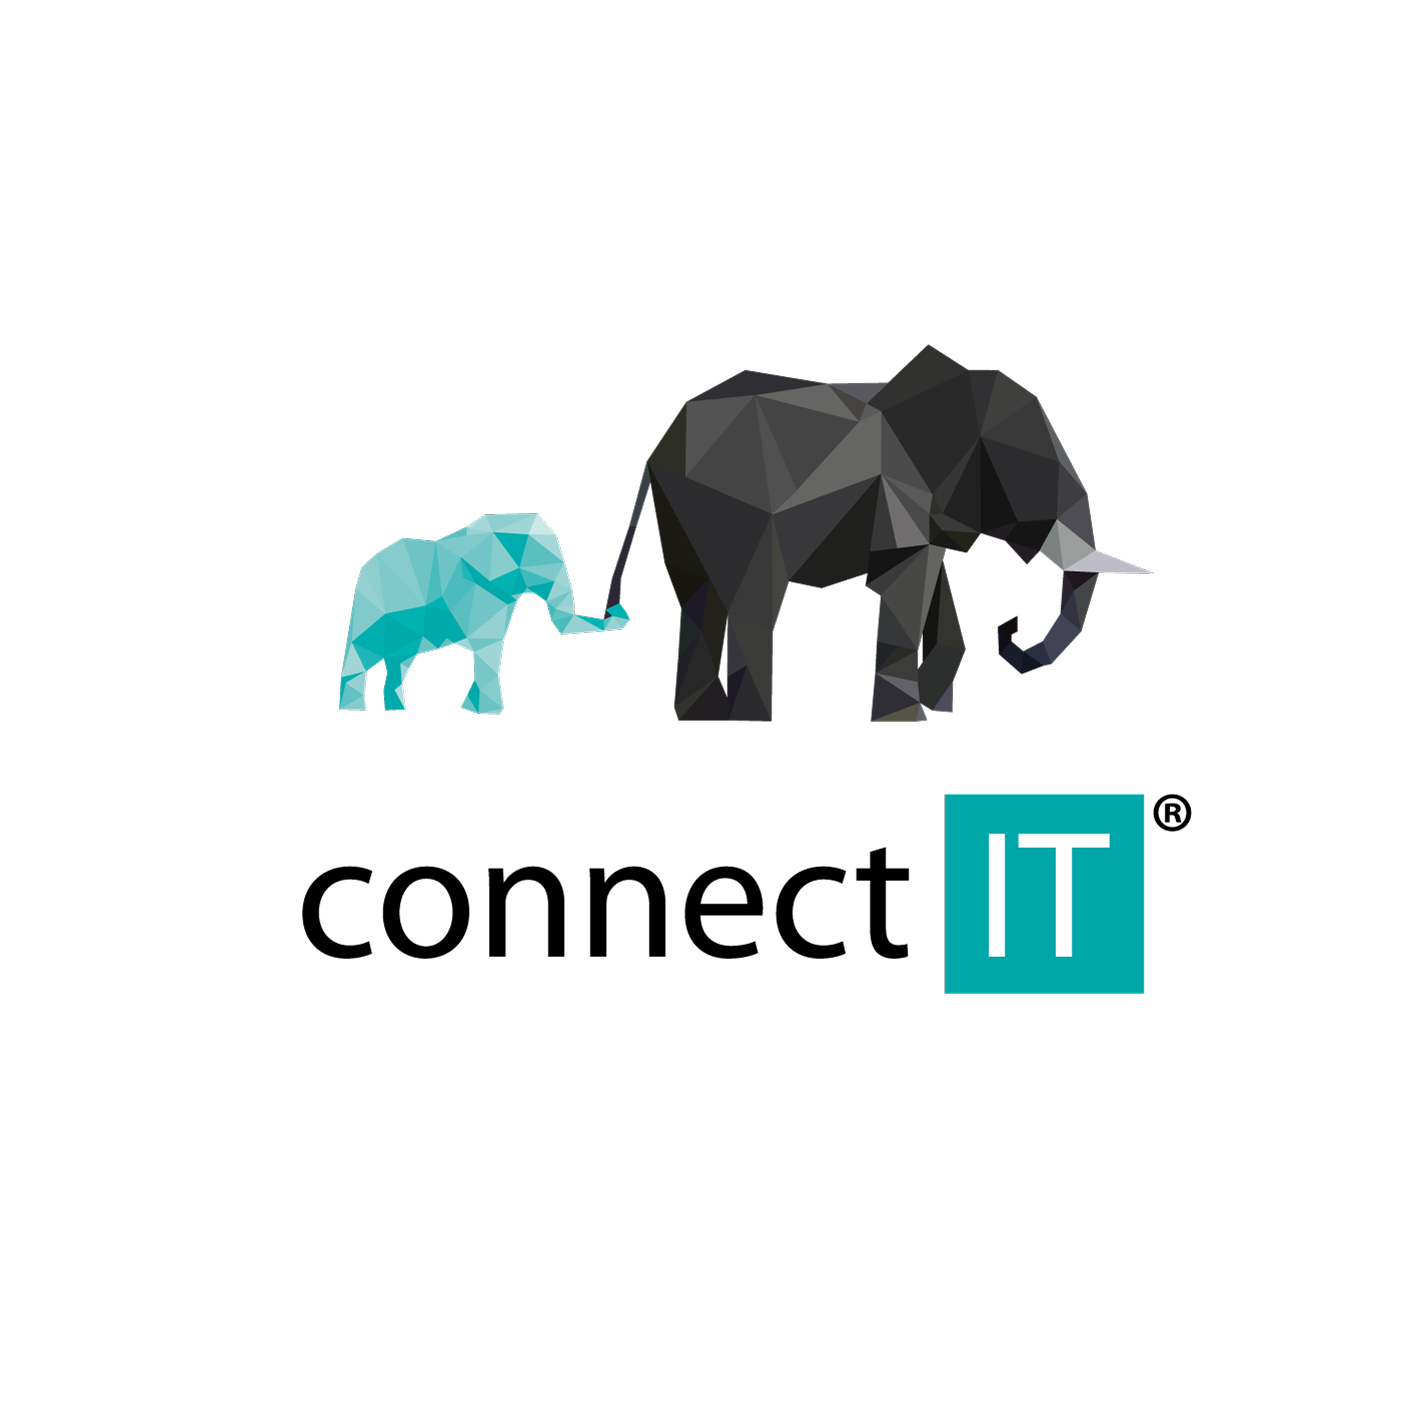 connect-it-elephants.jpg